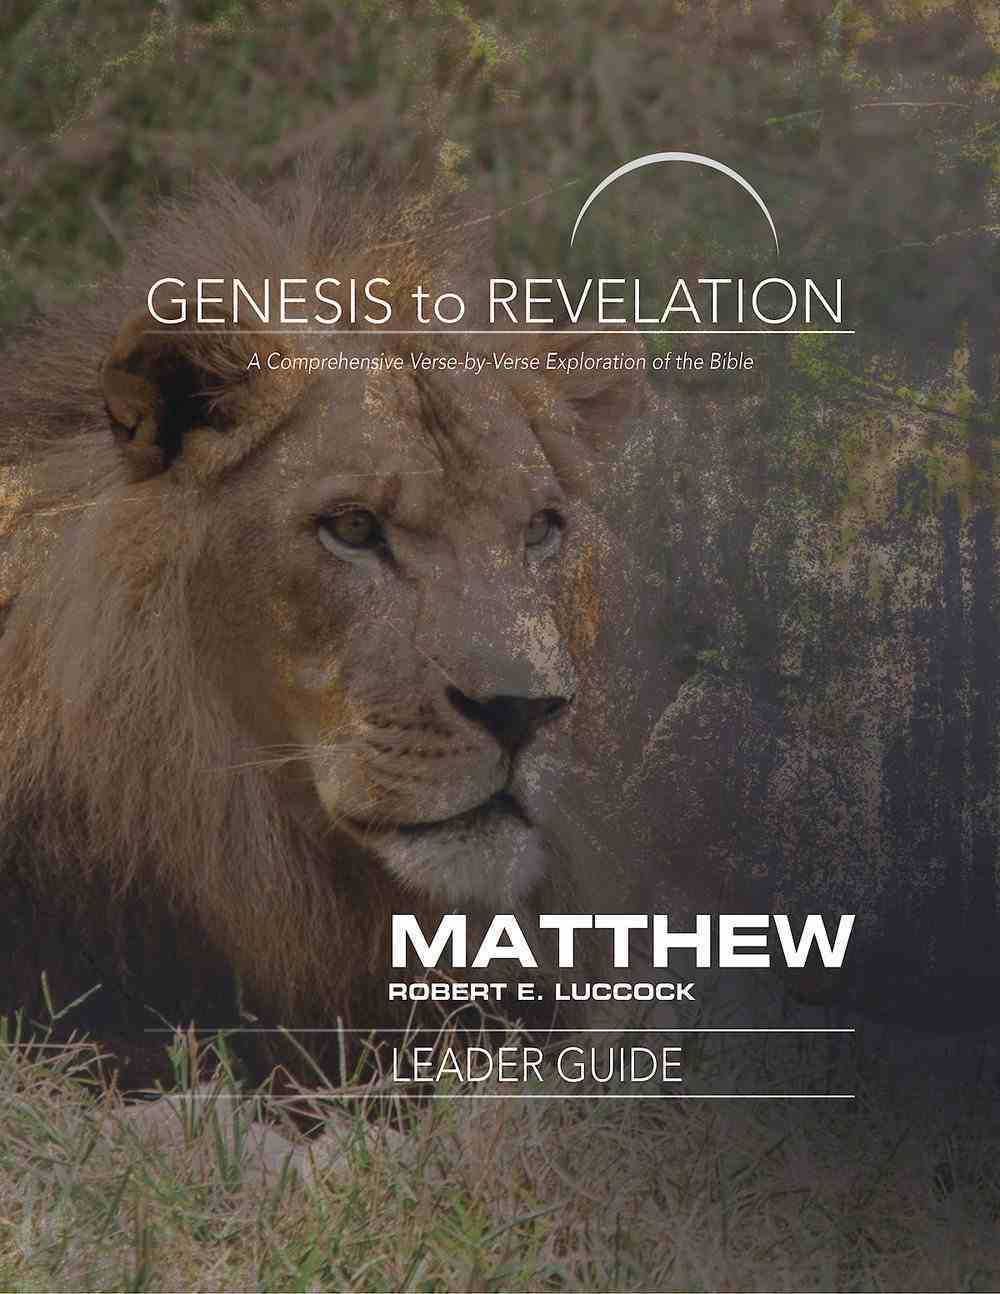 Matthew : A Comprehensive Verse-By-Verse Exploration of the Bible (Leader Guide) (Genesis To Revelation Series) eBook